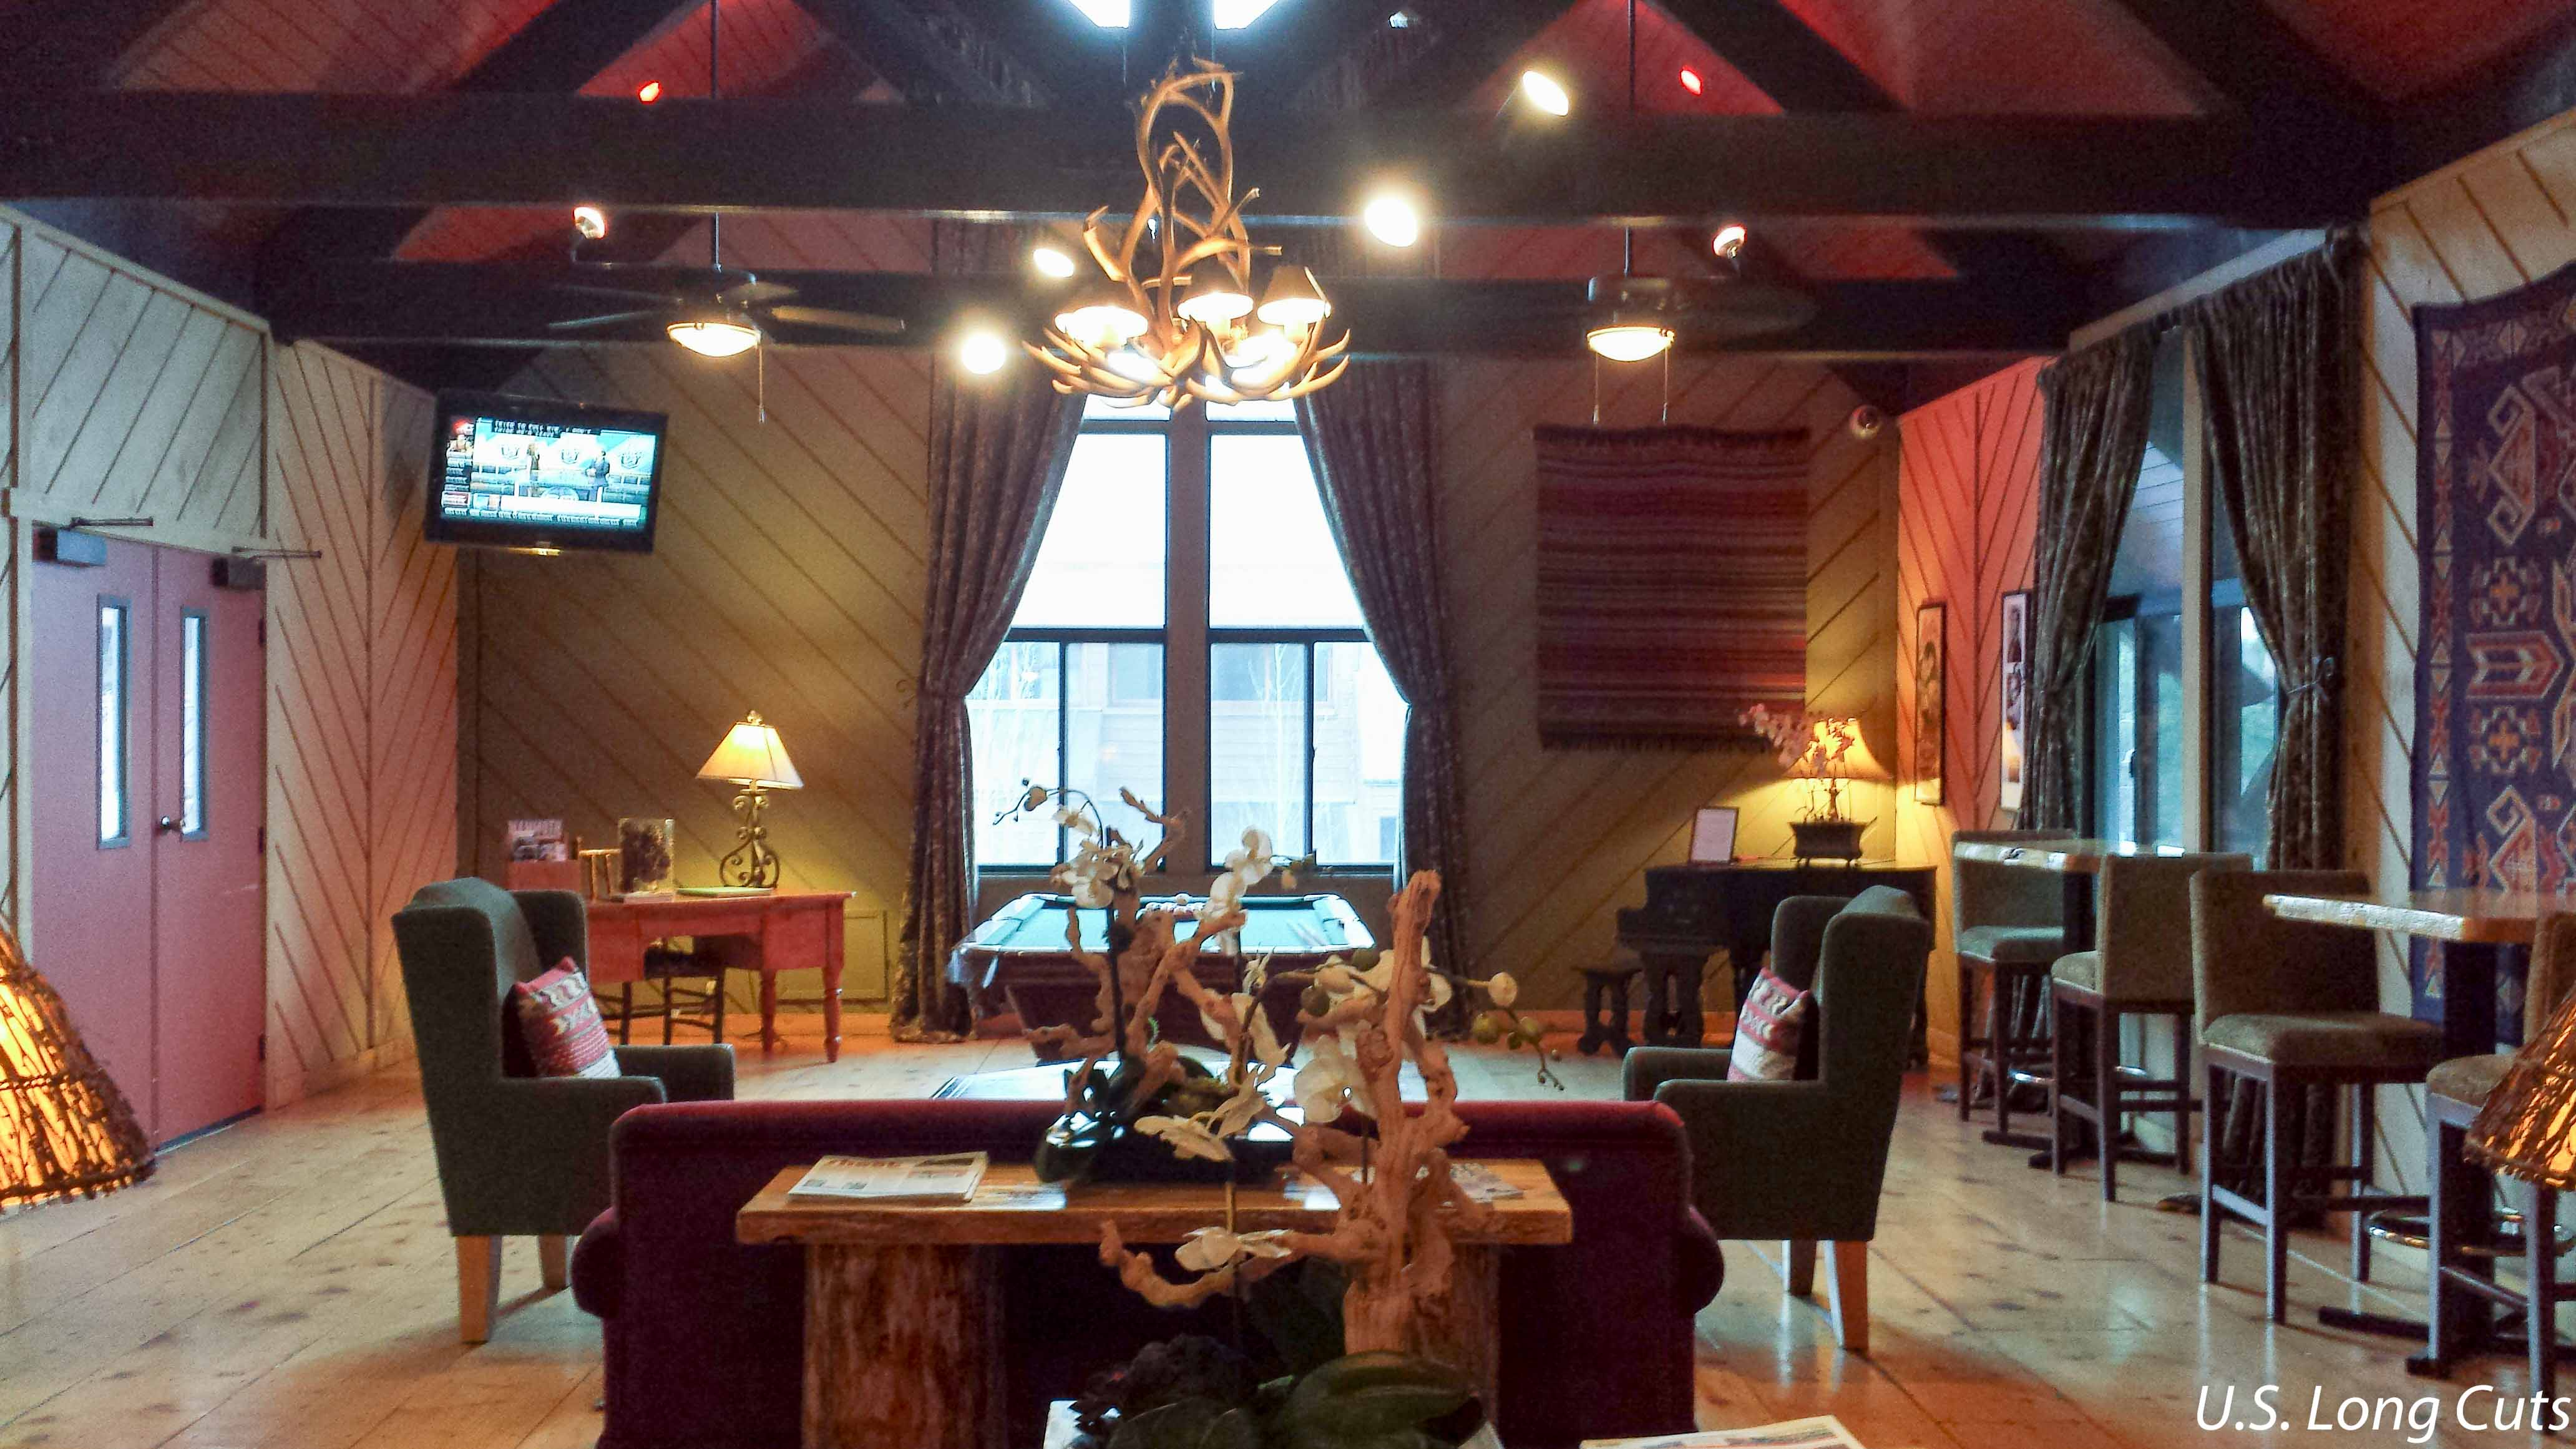 Sierra nevada resort more comforts than home midwest - Hotel lodge sierra nevada ...